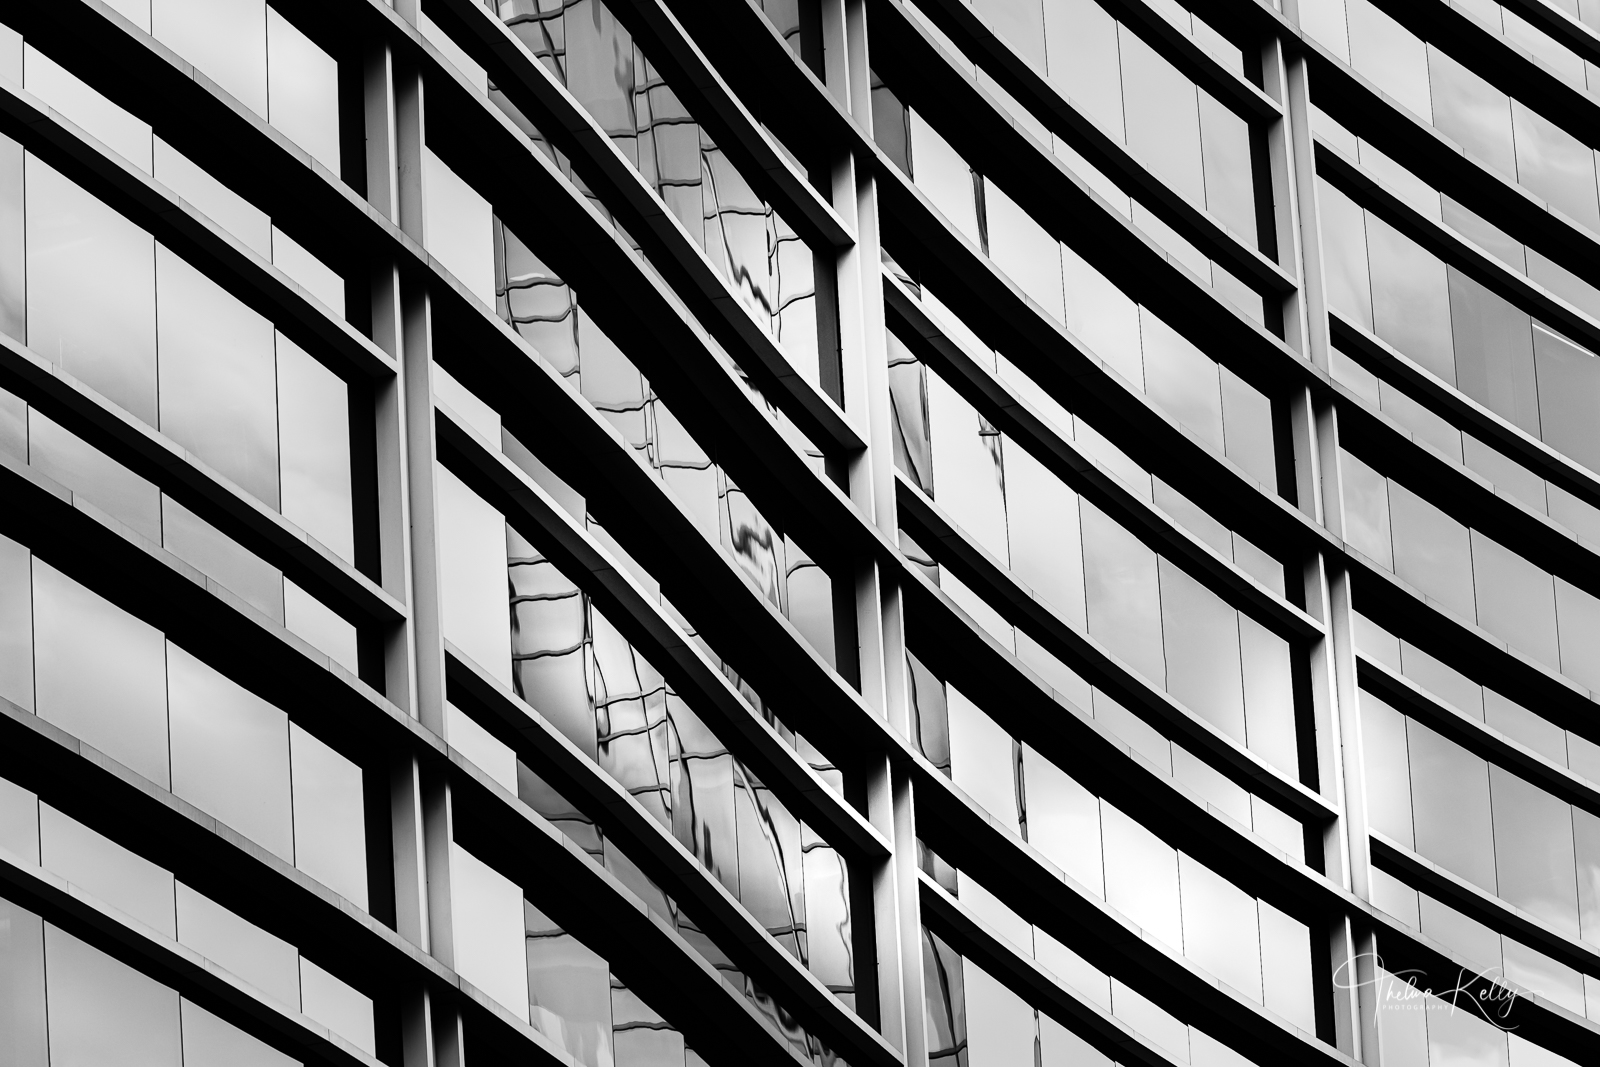 Undulating waves of perfectly molded glass and steel